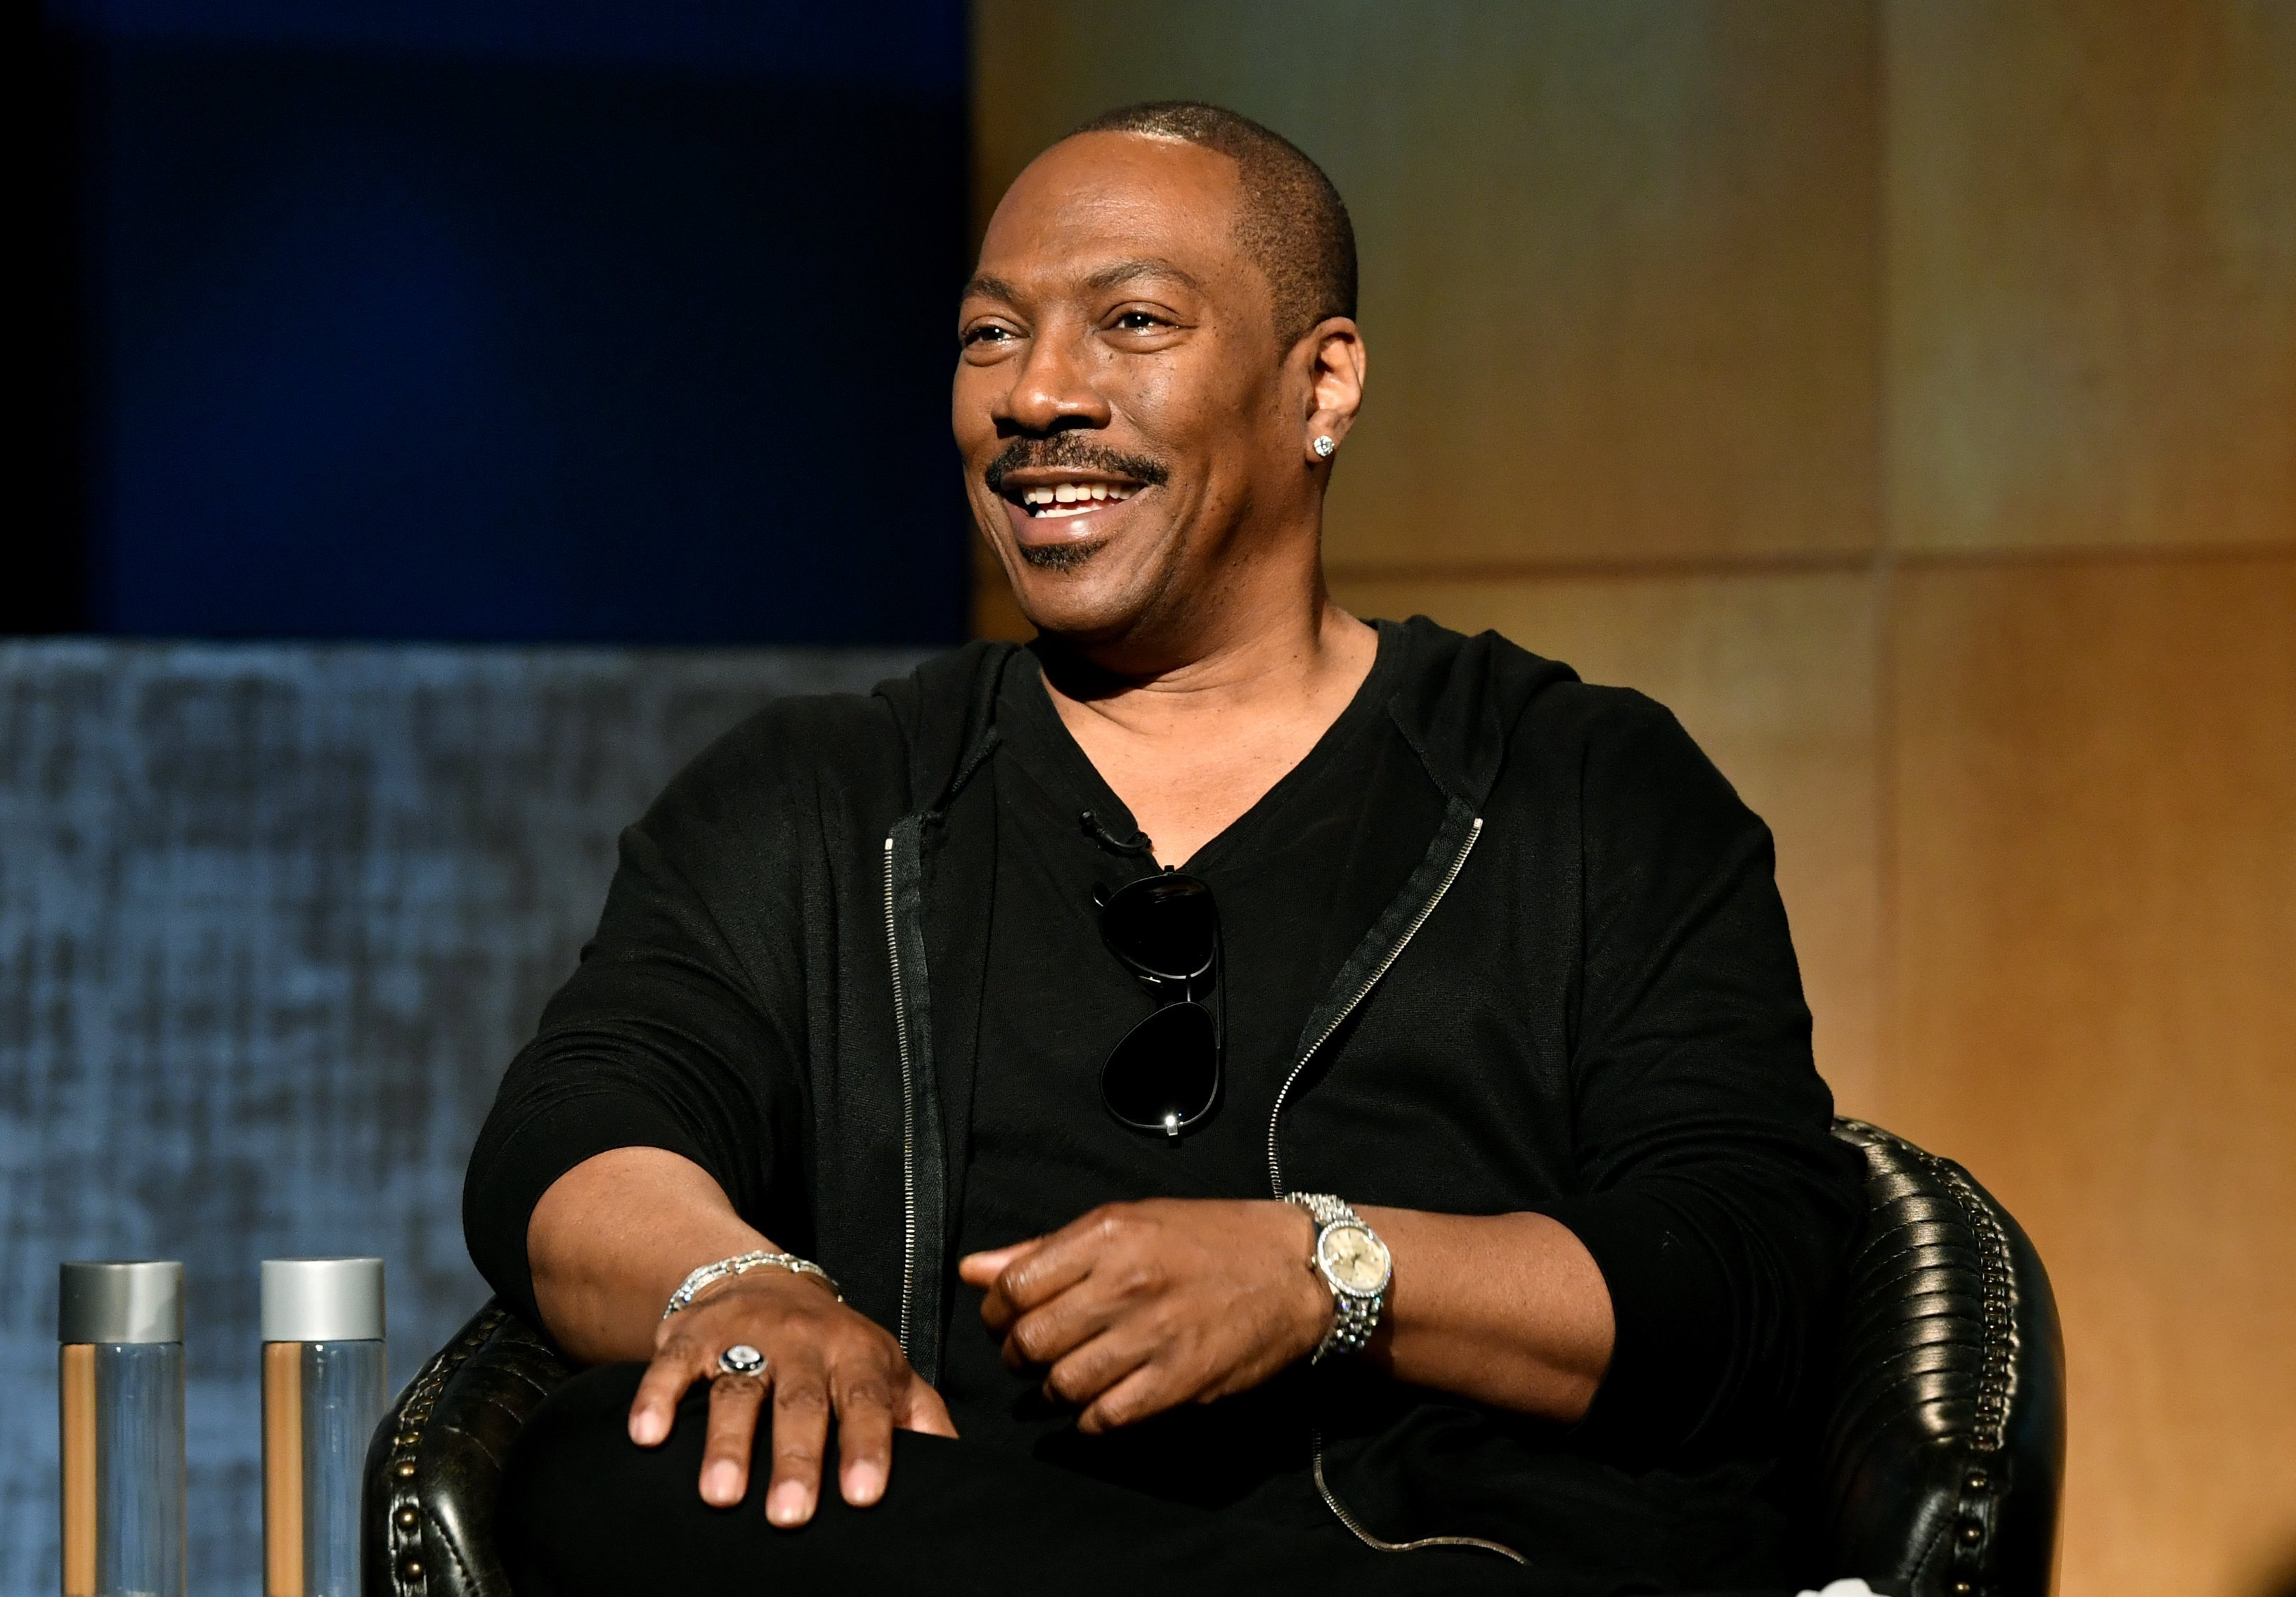 Eddie Murphy speaks onstage during the LA Tastemaker event for Comedians in Cars at The Paley Center for Media on July 17, 2019, in Beverly Hills City. | Photo: Getty Images.